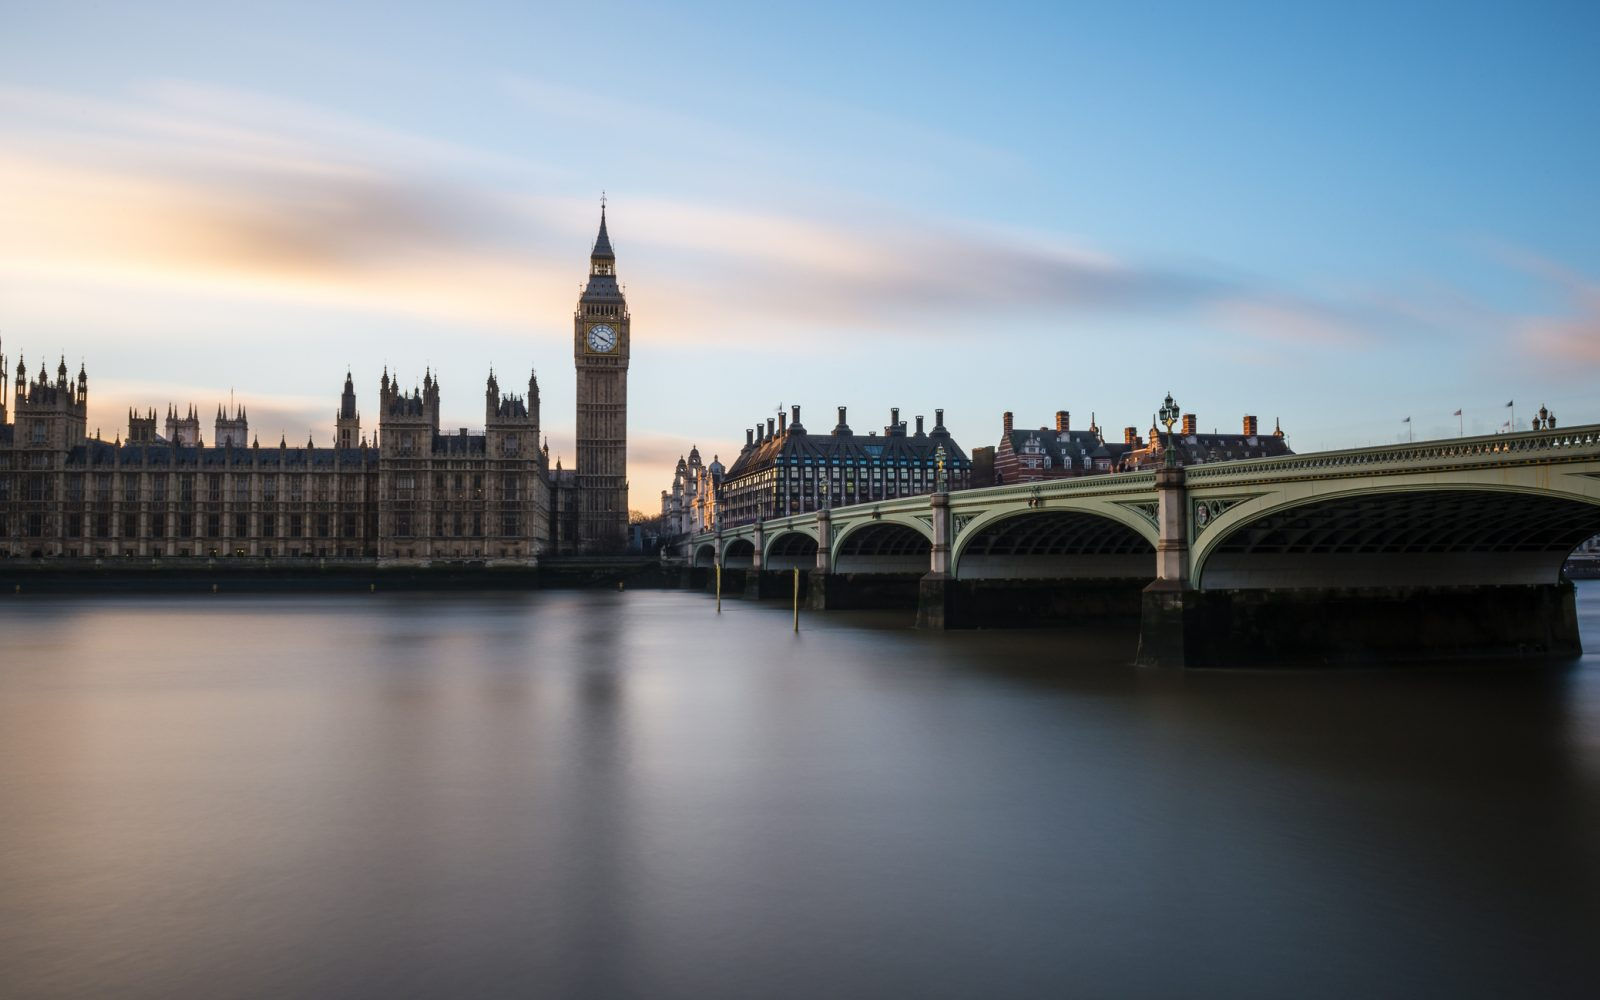 While some progress has been made, Green Alliance has found that the UK will need to double its annual spending on net zero focused policies to 2024. Image: Getty.